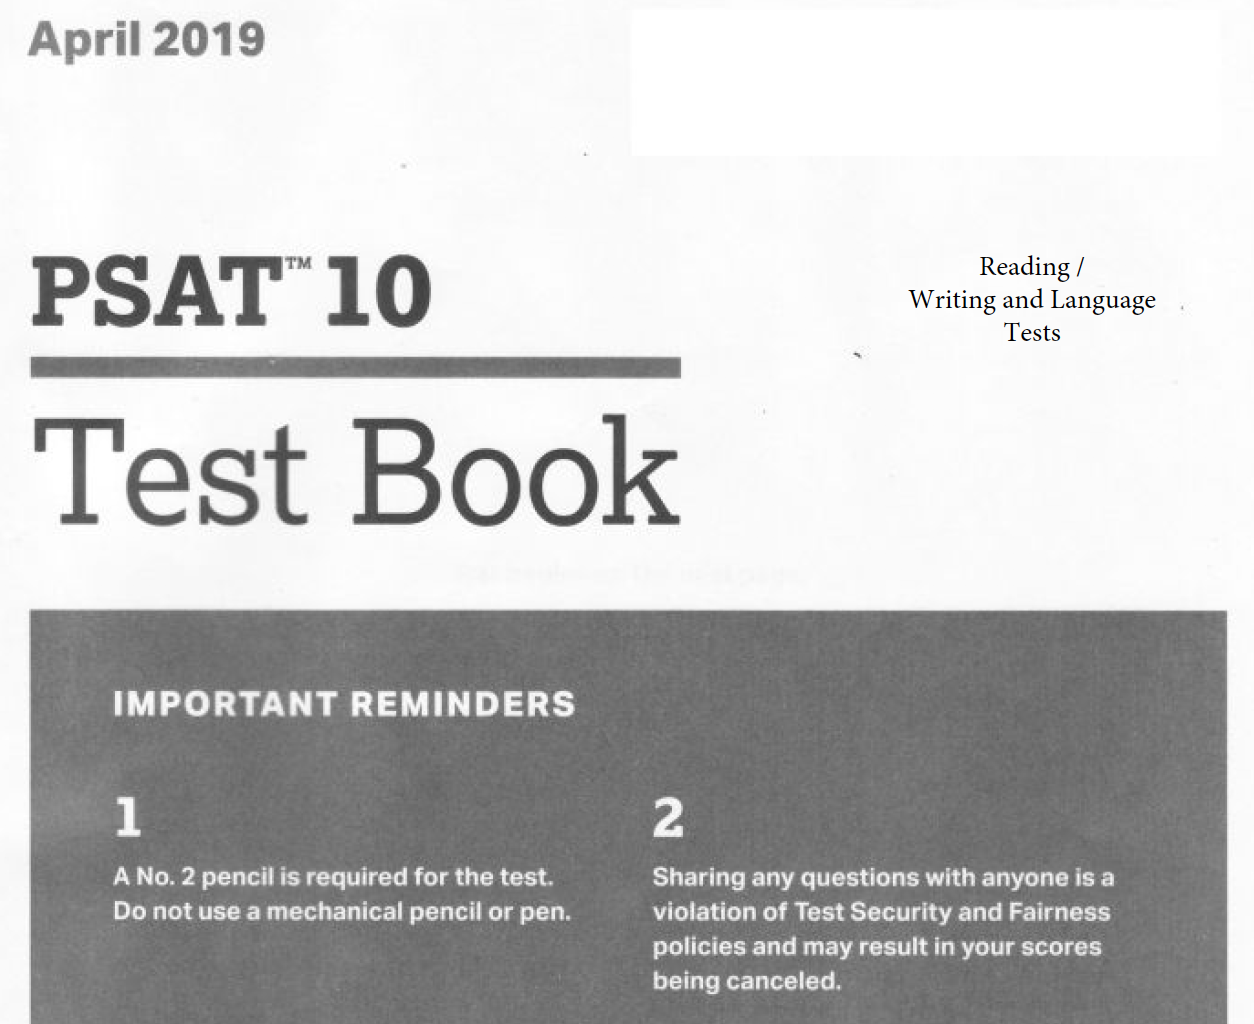 April 2019 PSAT 10 Test - Reading - Writing and Language Version